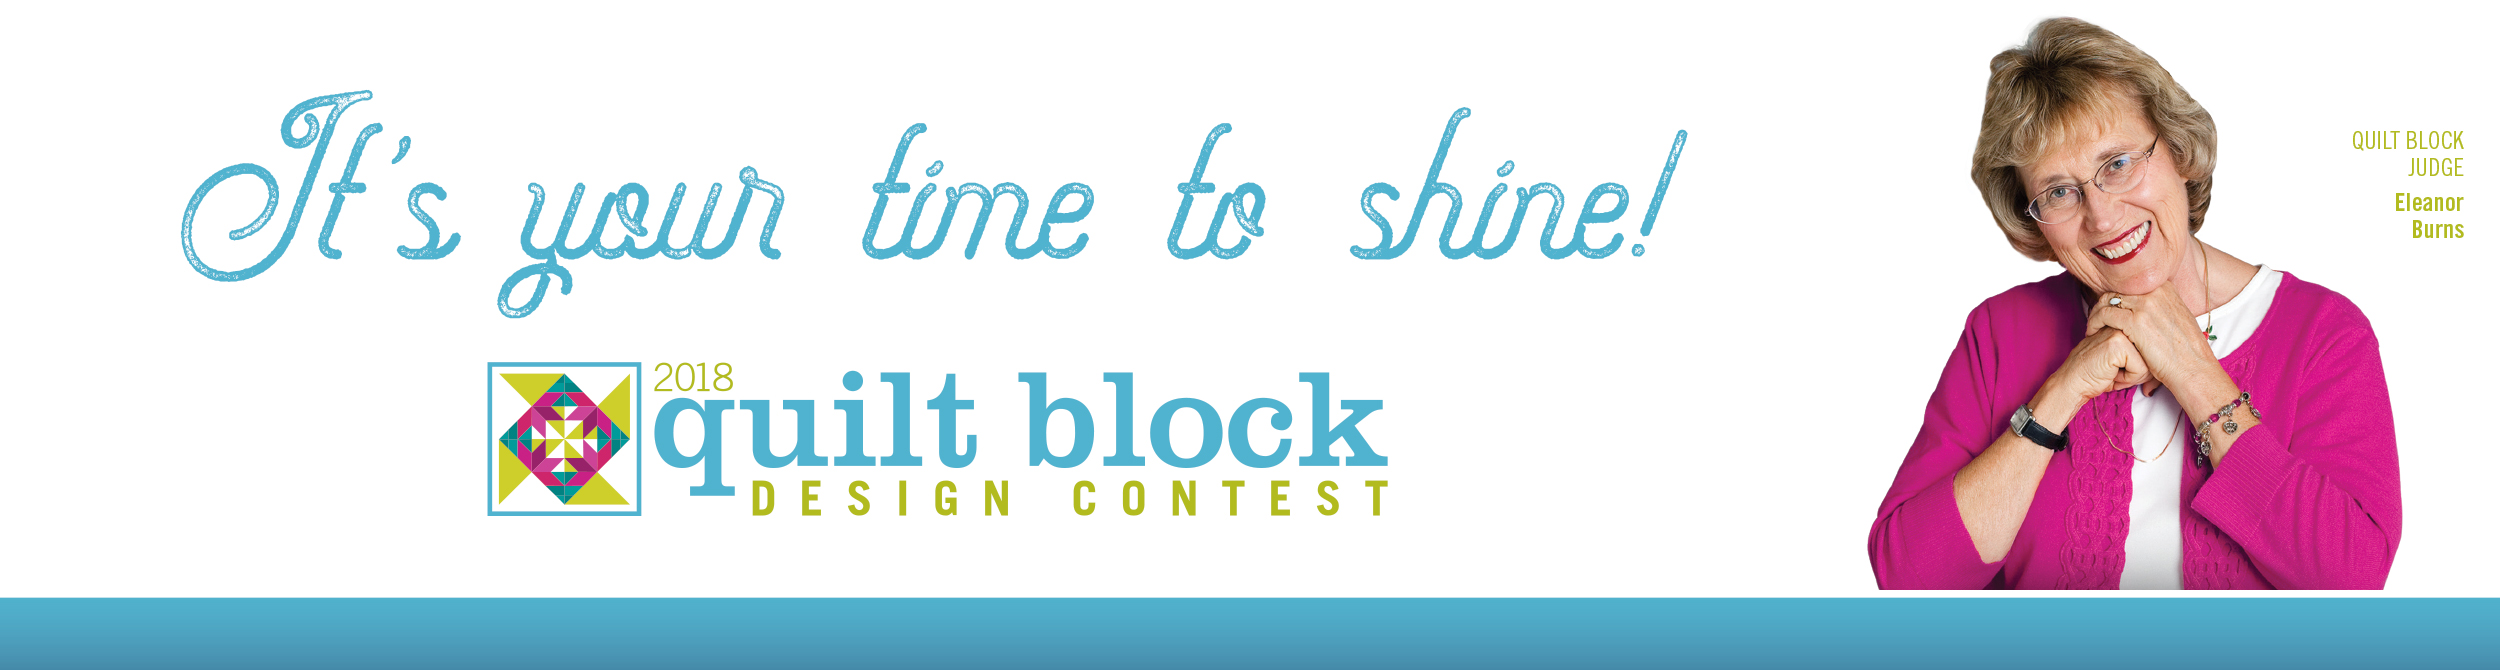 2018 Quilt Block Design Contest